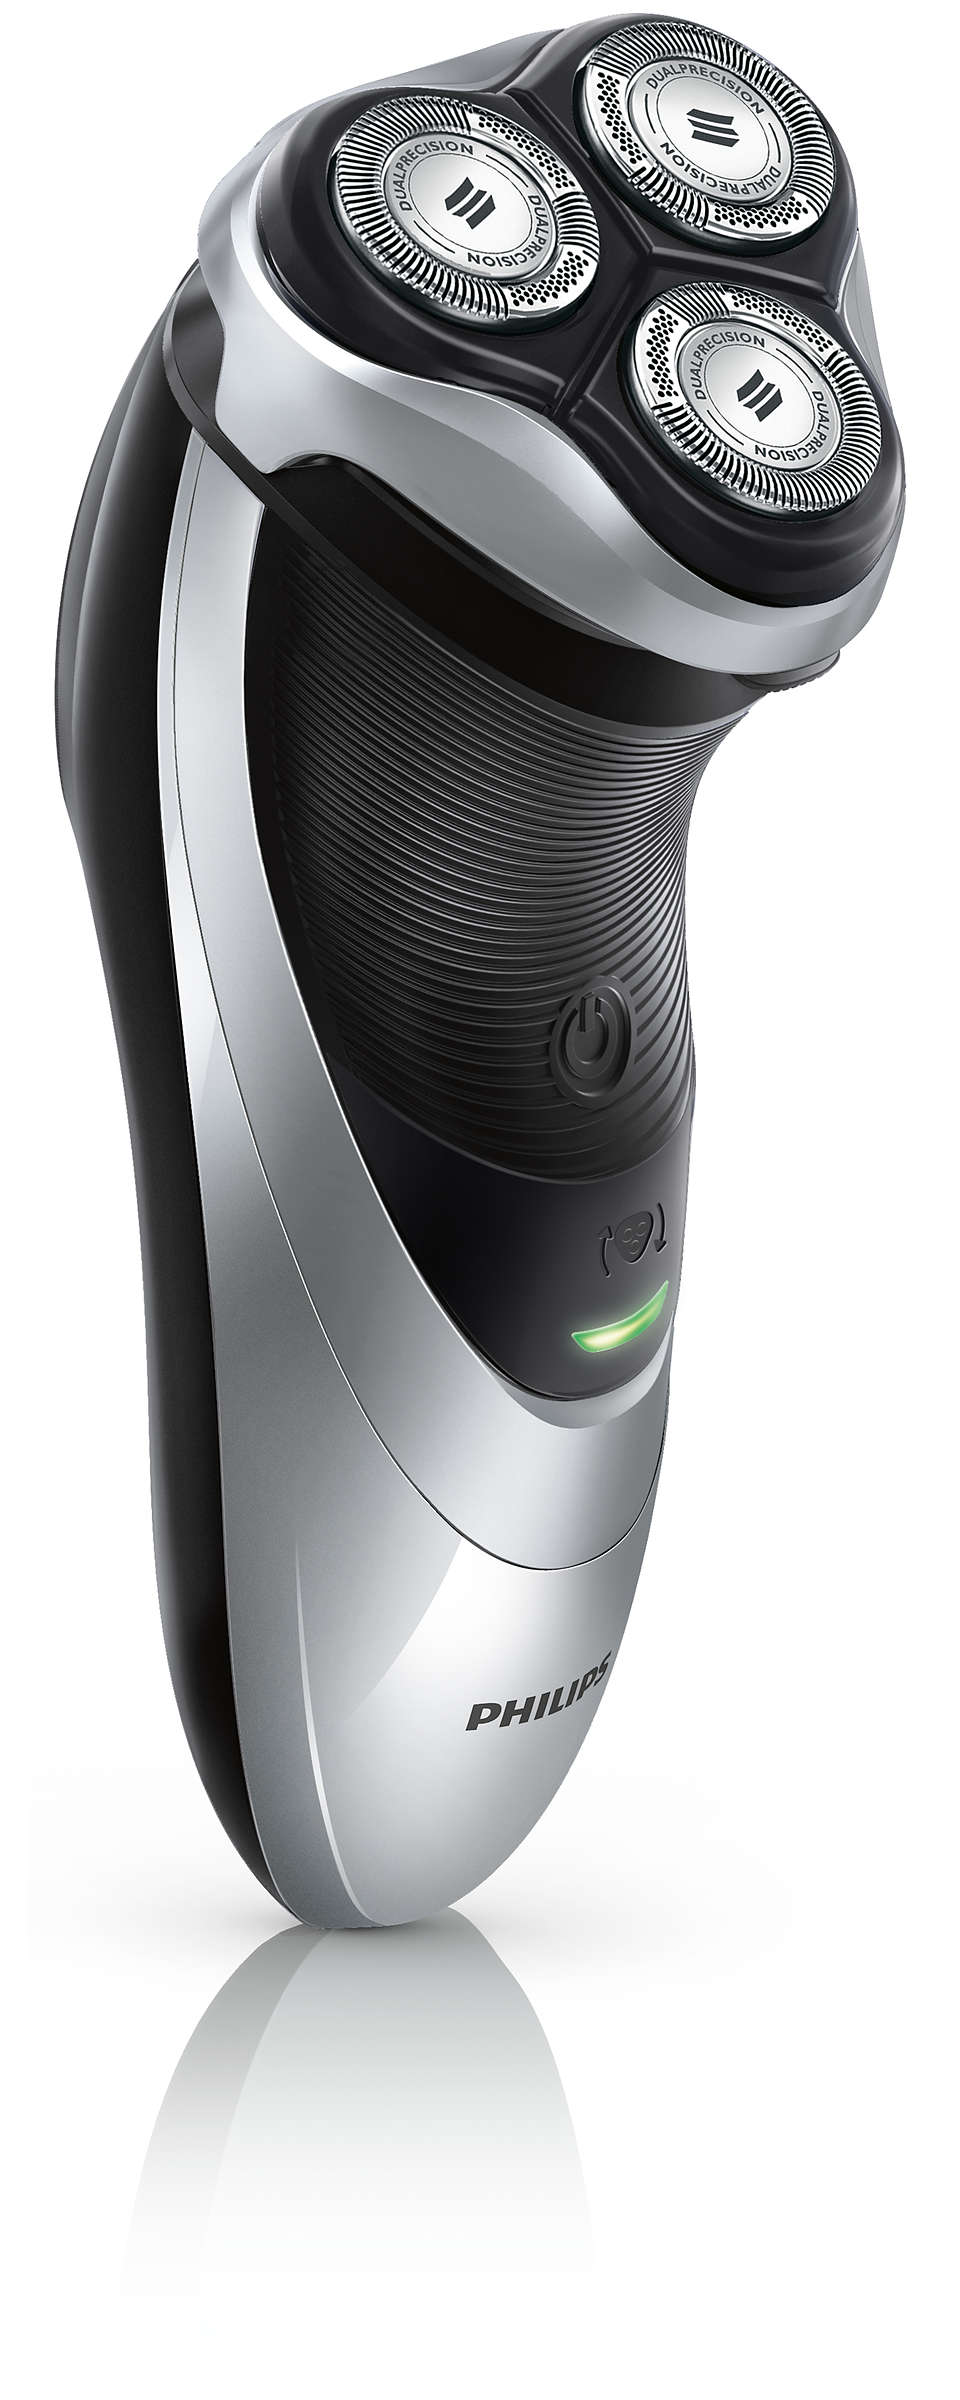 Philips PowerTouch-system